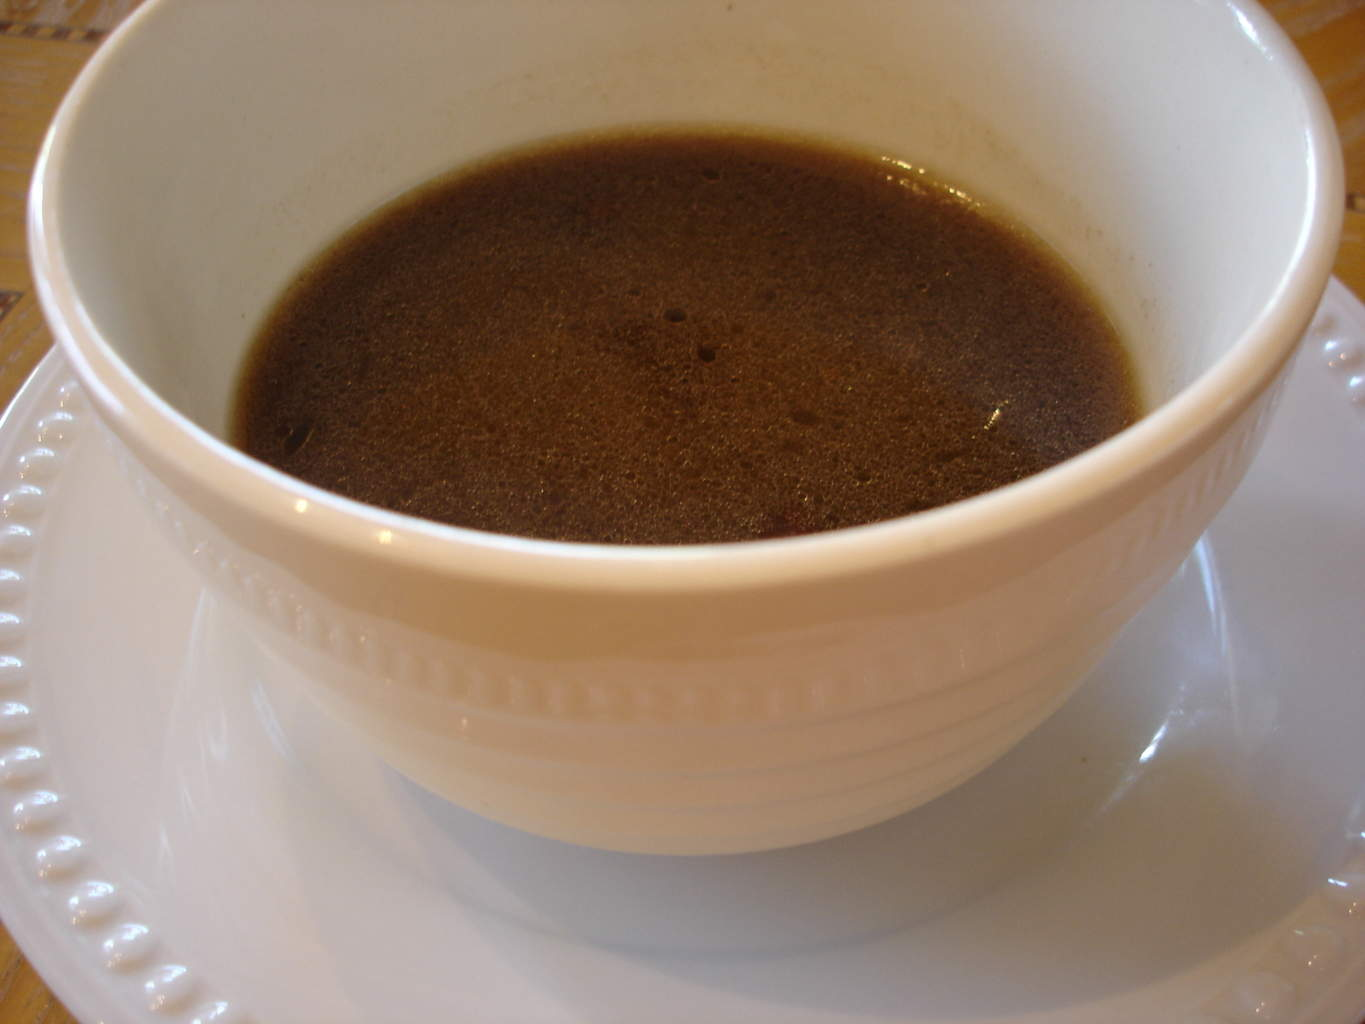 ... gravy bowl containing the red-eye gravy told me everything I need to